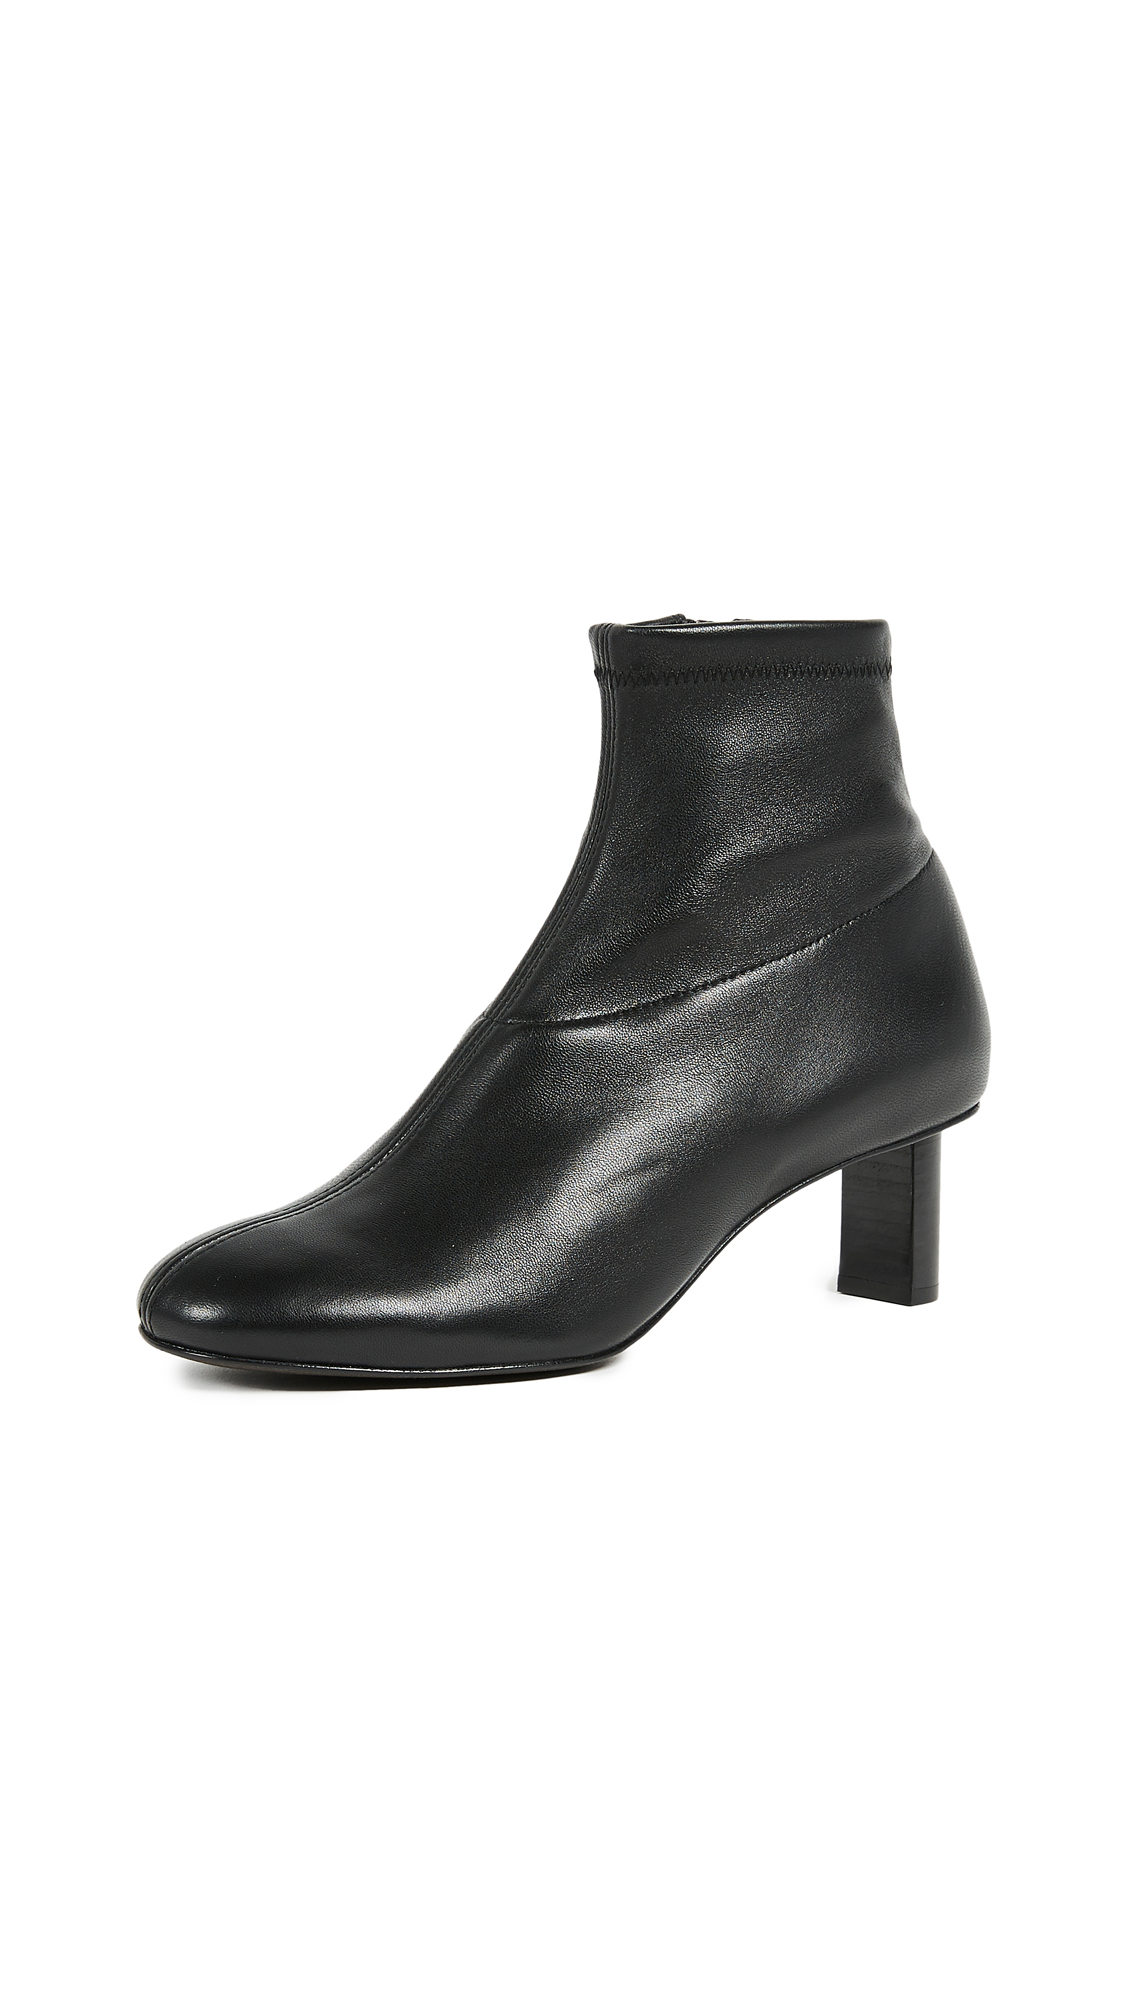 Joseph Can Can Boots - Black